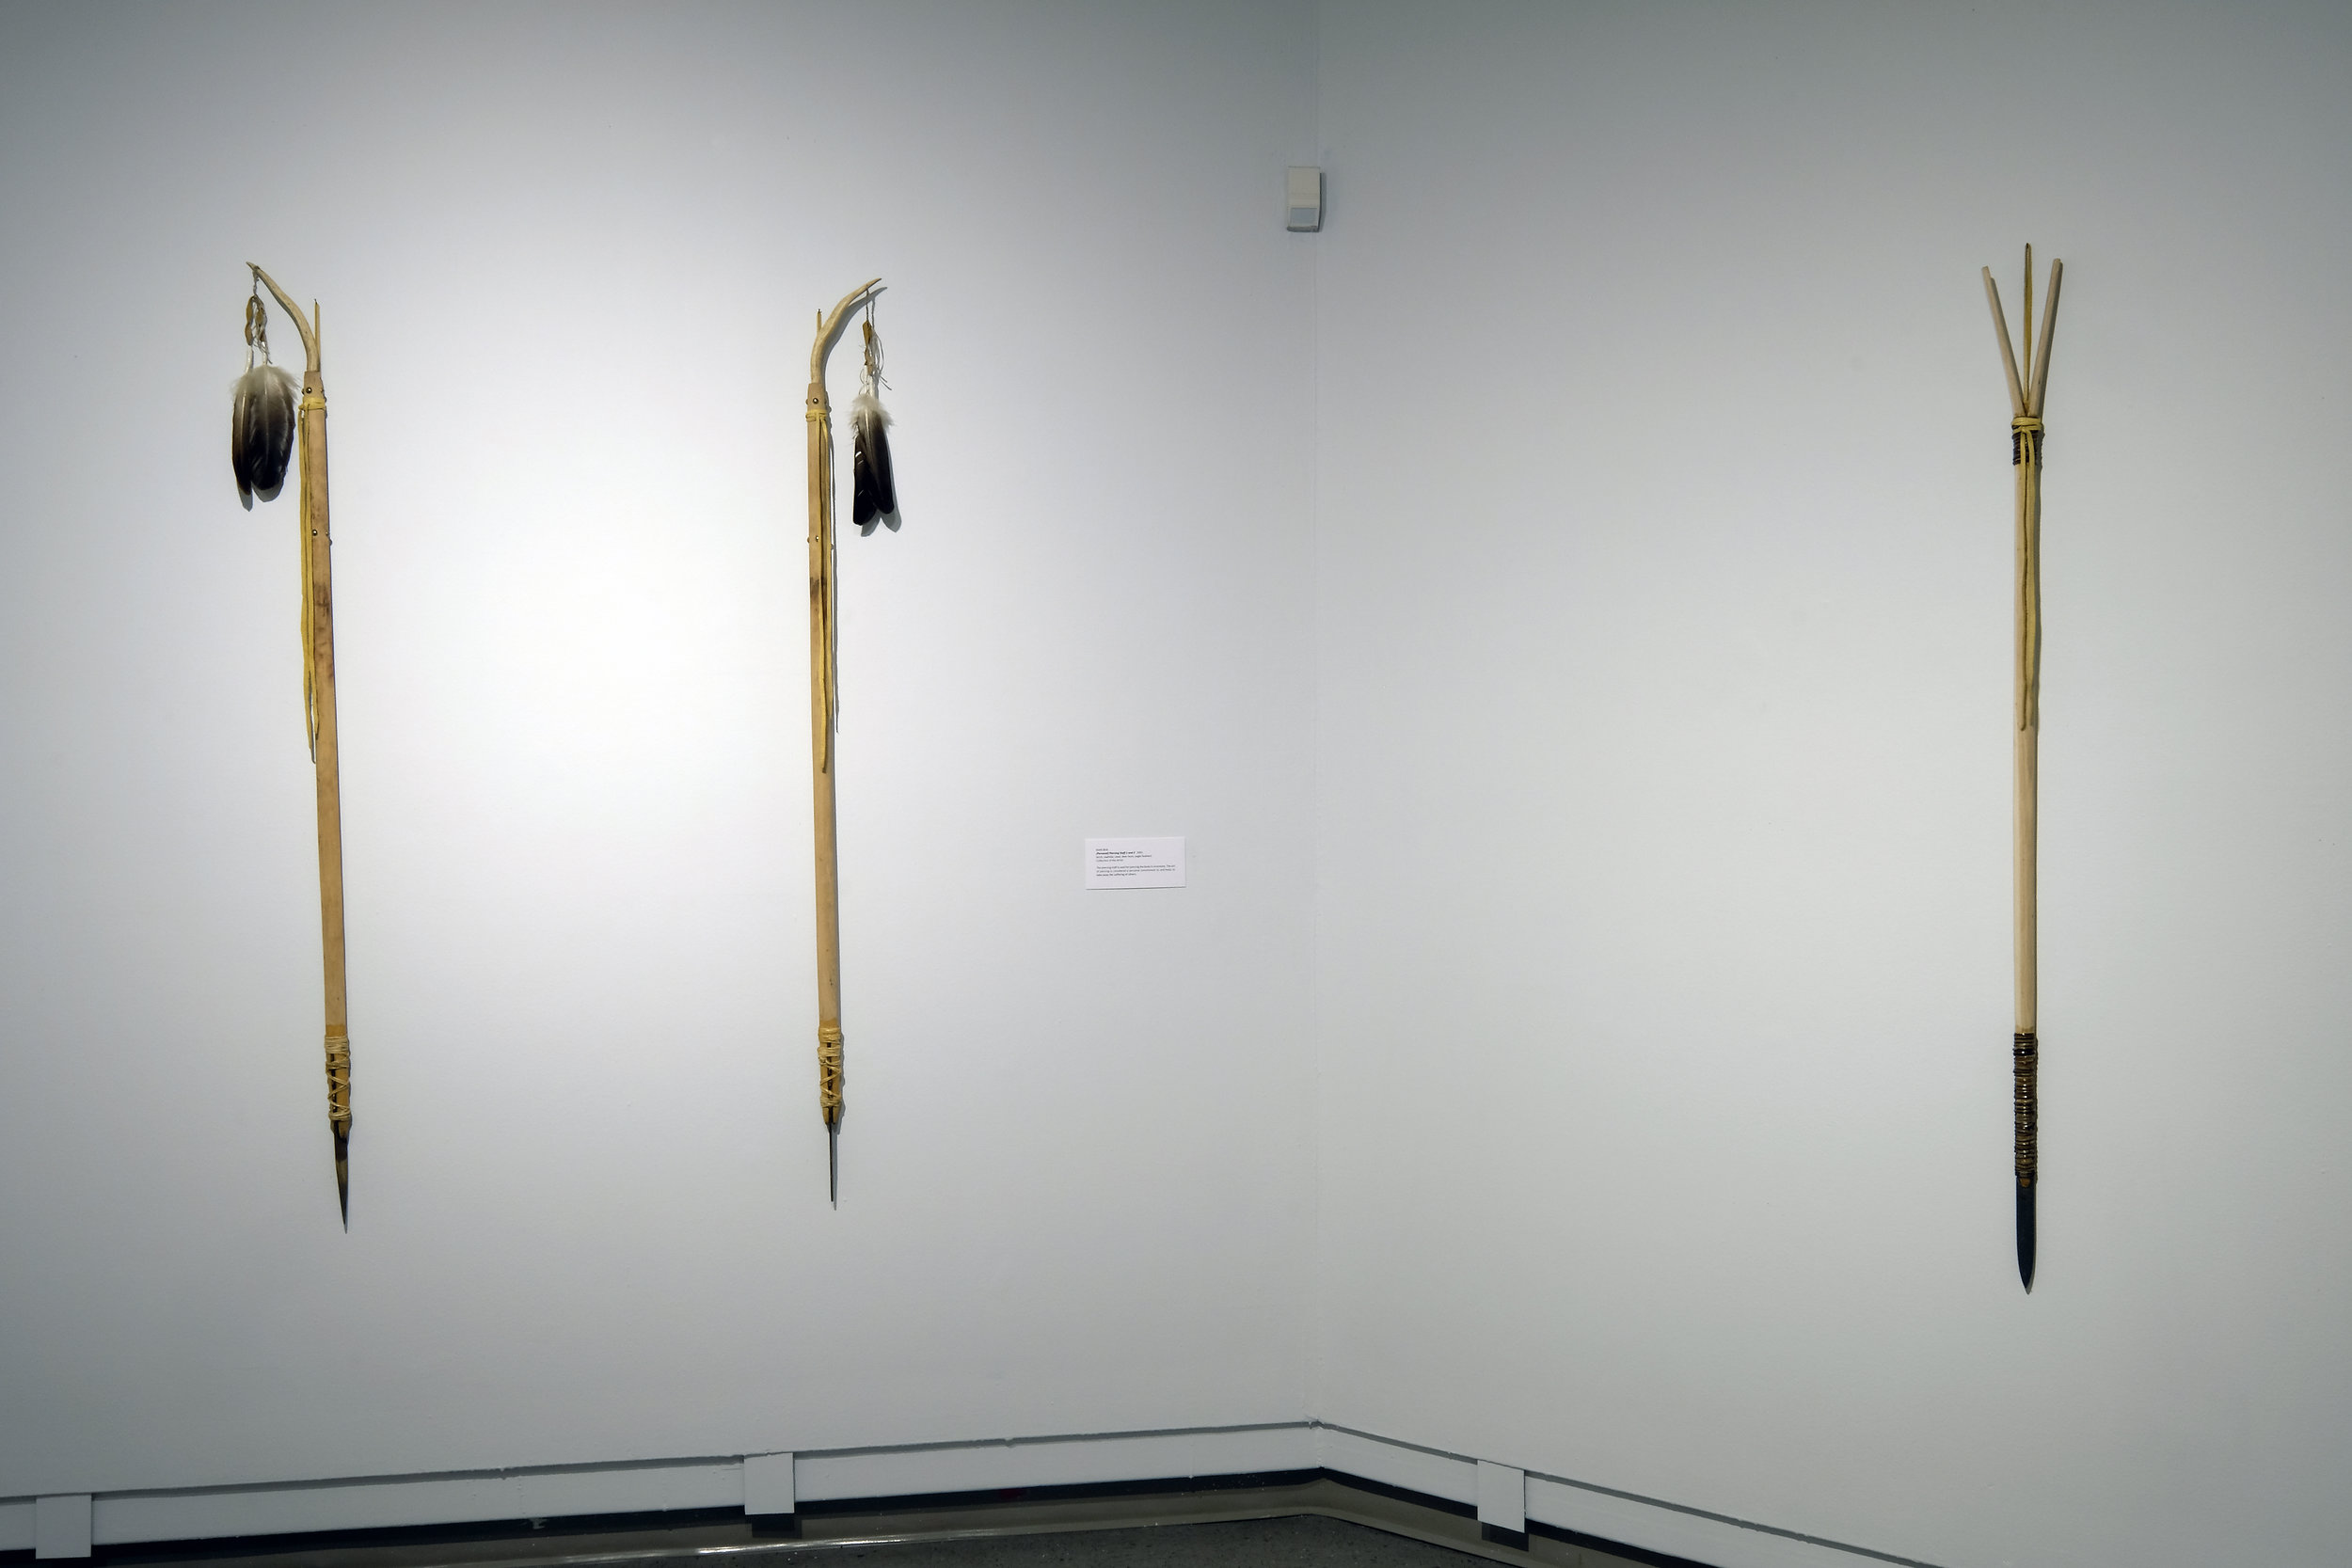 (Personal) Piercing Staff 1   and 2   ,   birch, rawhide, steel, deer horn, eagle feathers, 2001.    (Personal) Sundance Staff,  birch, rawhide, steel, 2001